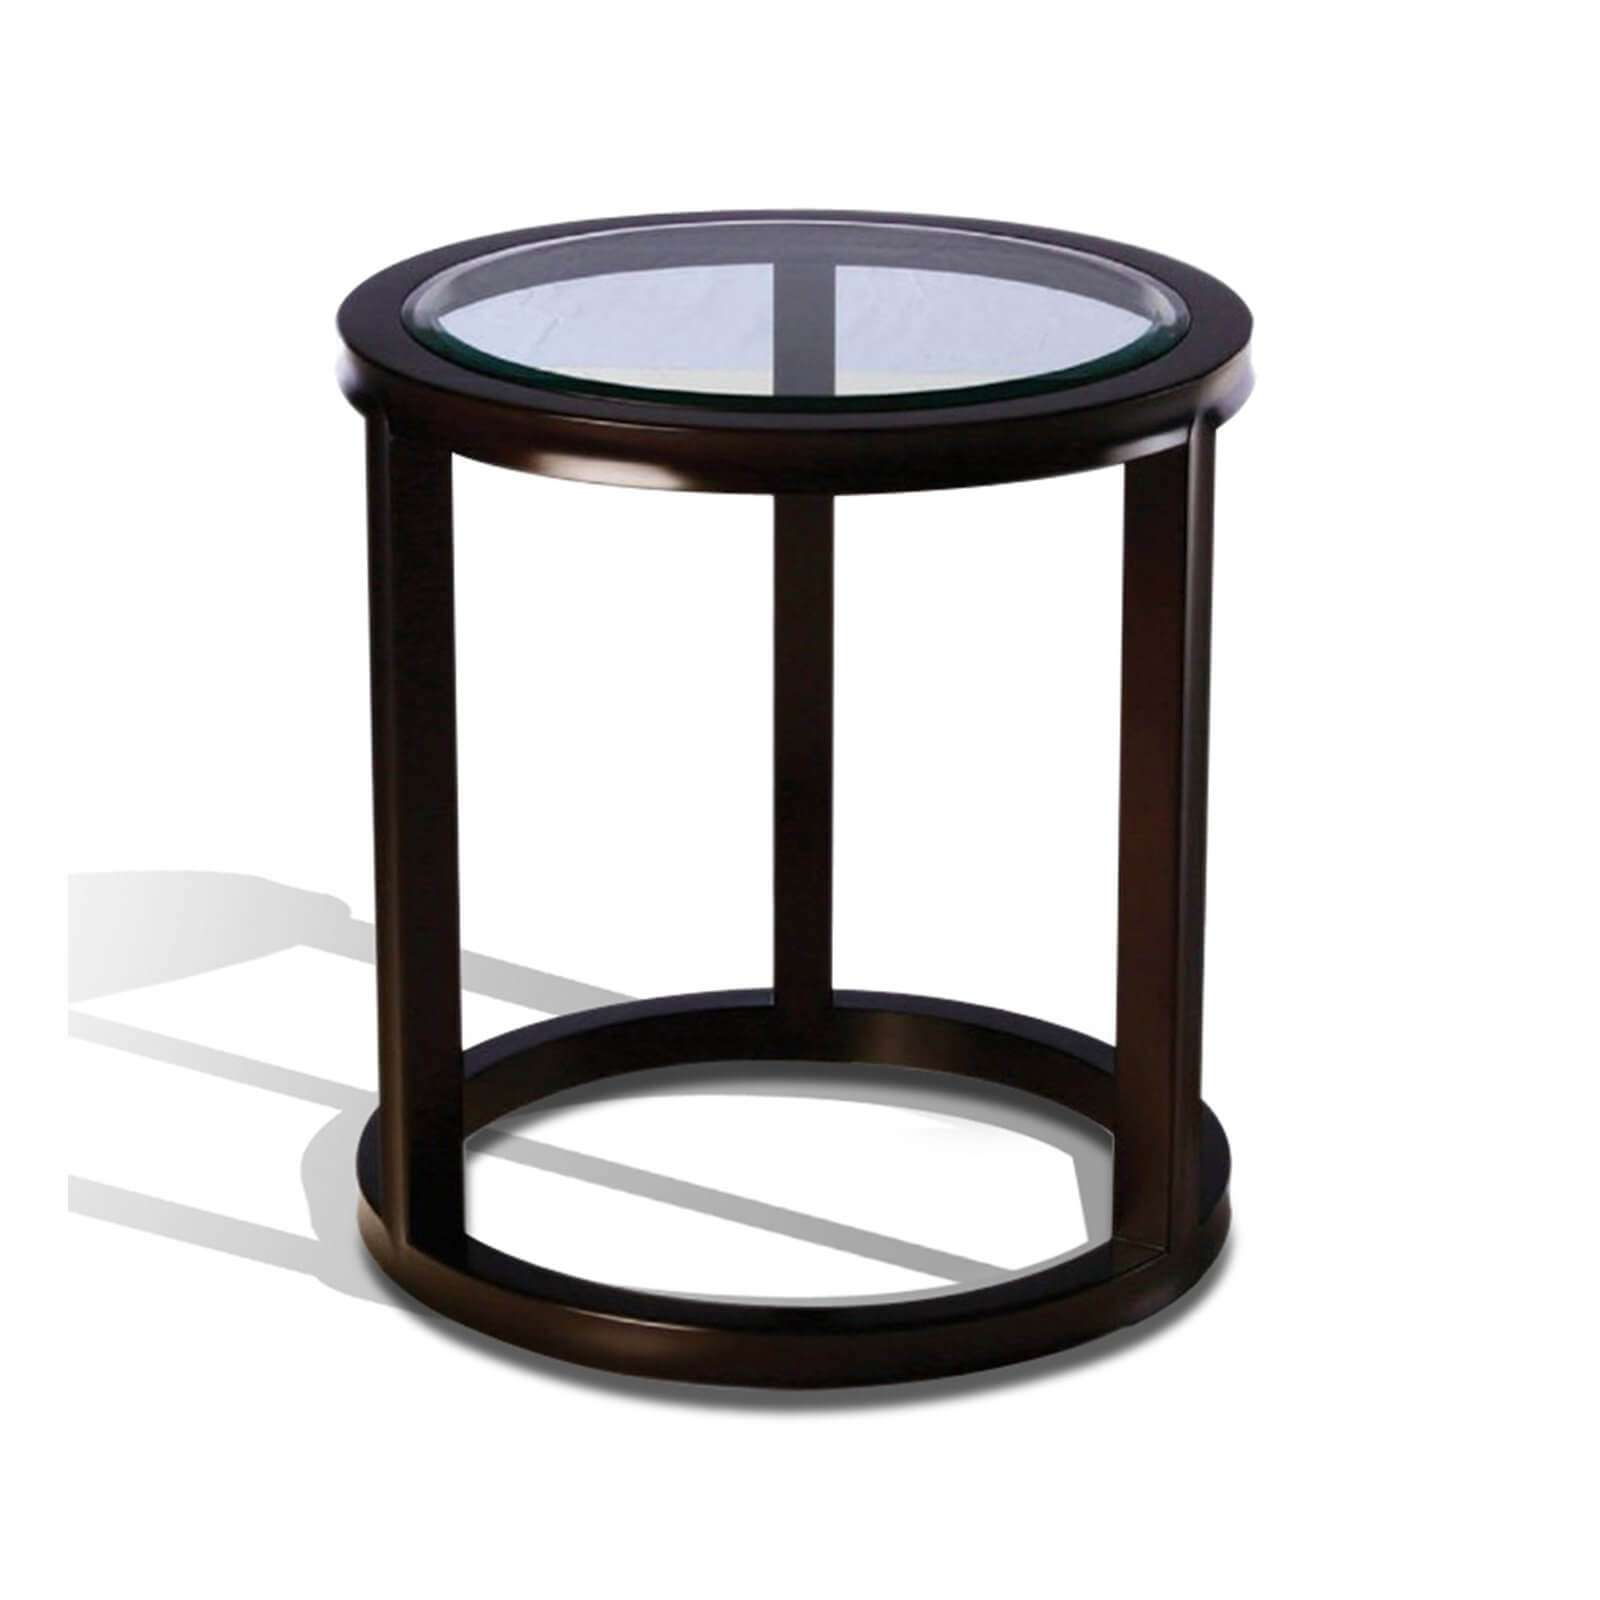 FIFTH AVE ROUND SIDE TABLE